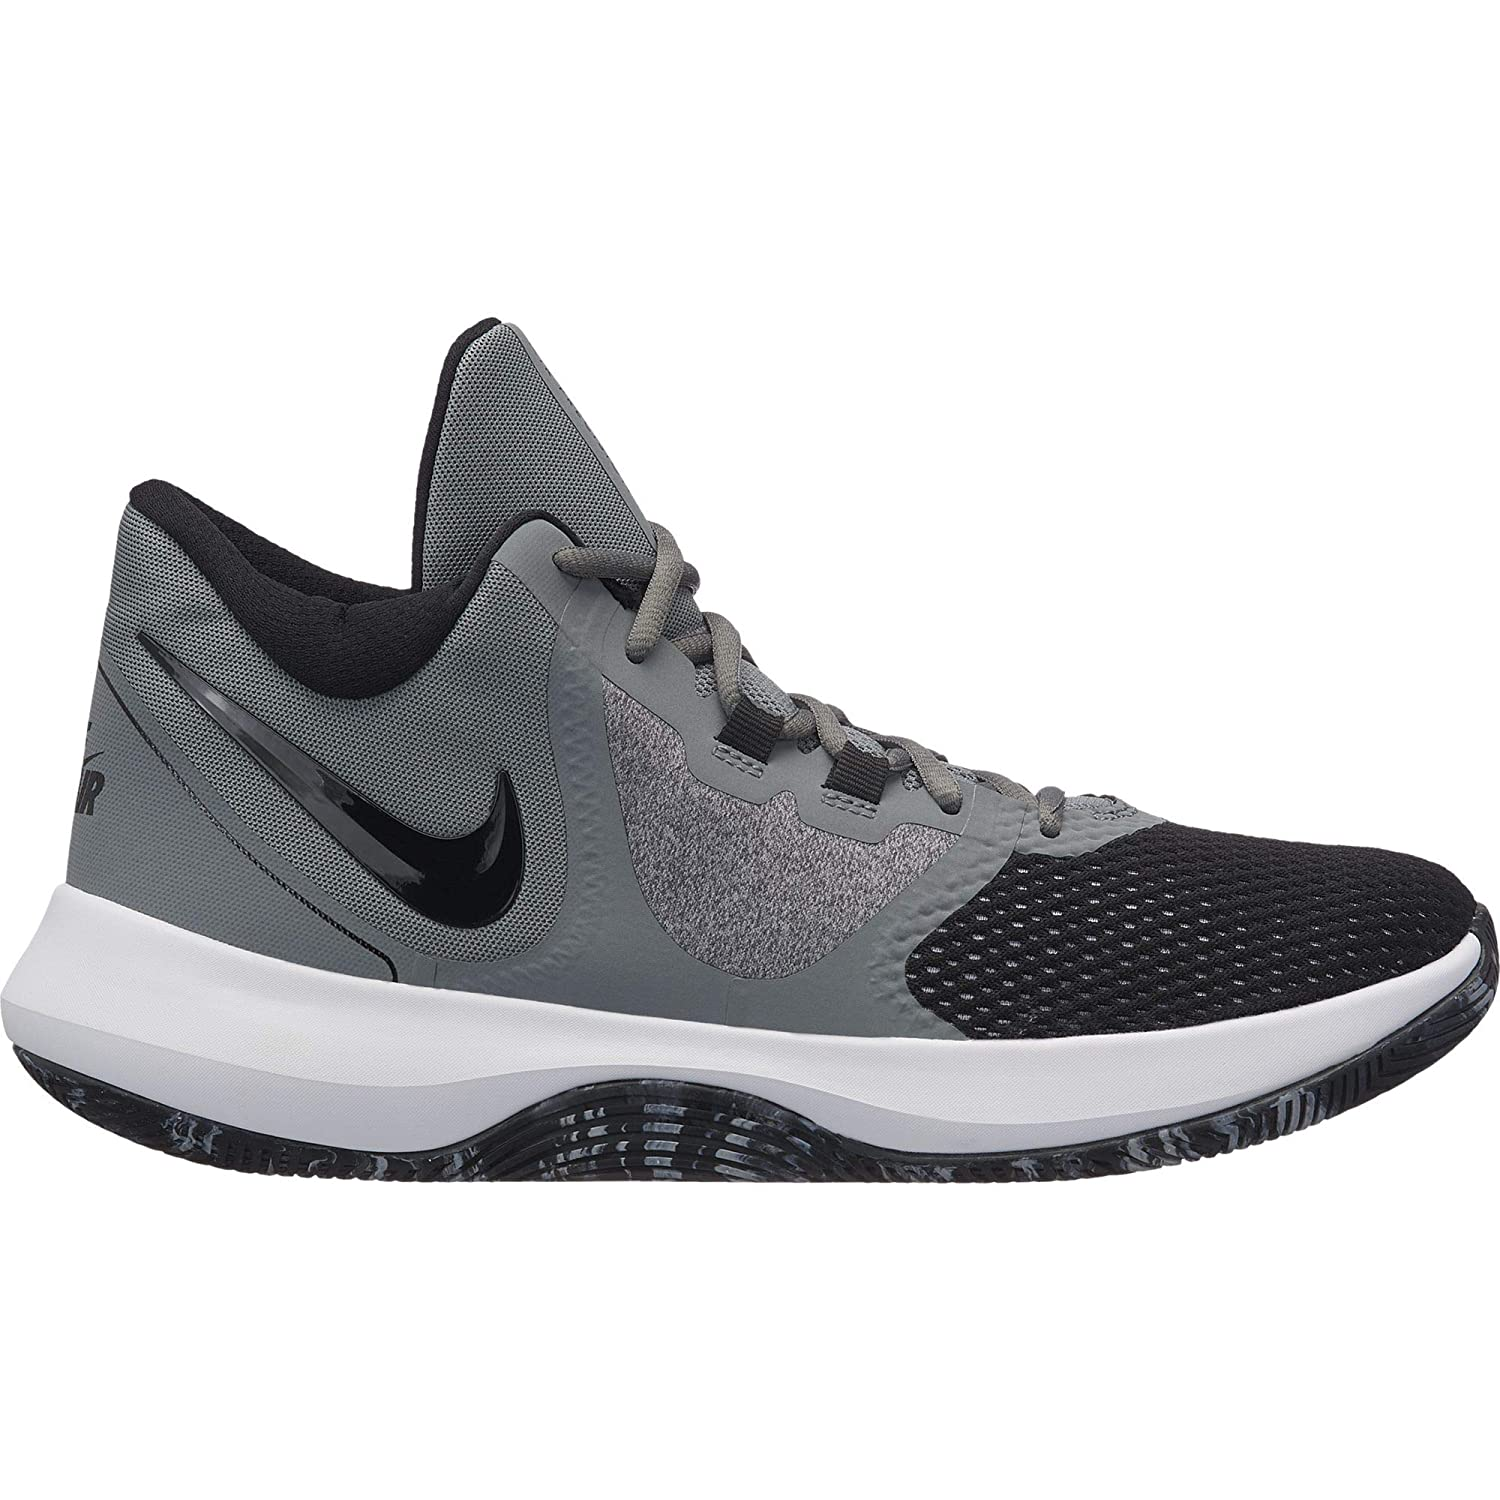 on sale 3d865 2d716 Nike Air Precision II Basketball Sports Shoes for Men  Buy Online at Low  Prices in India - Amazon.in